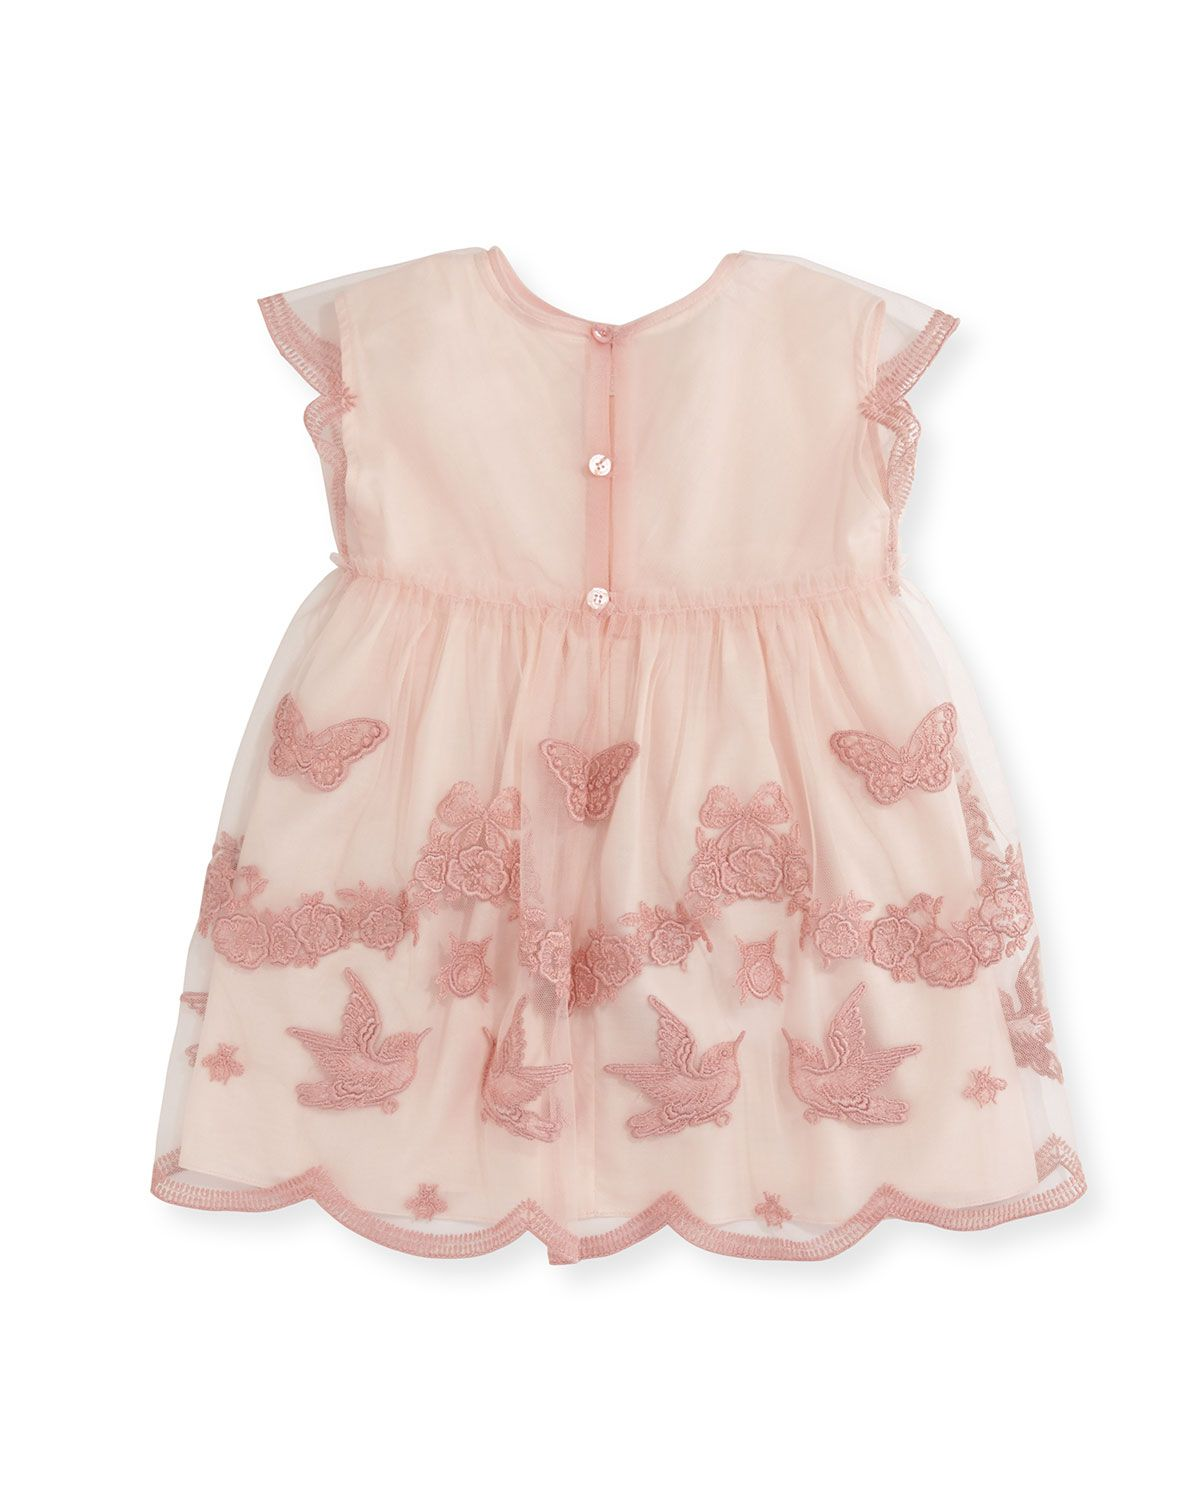 3f375eafd Tulle Embroidery Dress Size 9-36 Months | Products | Dresses ...